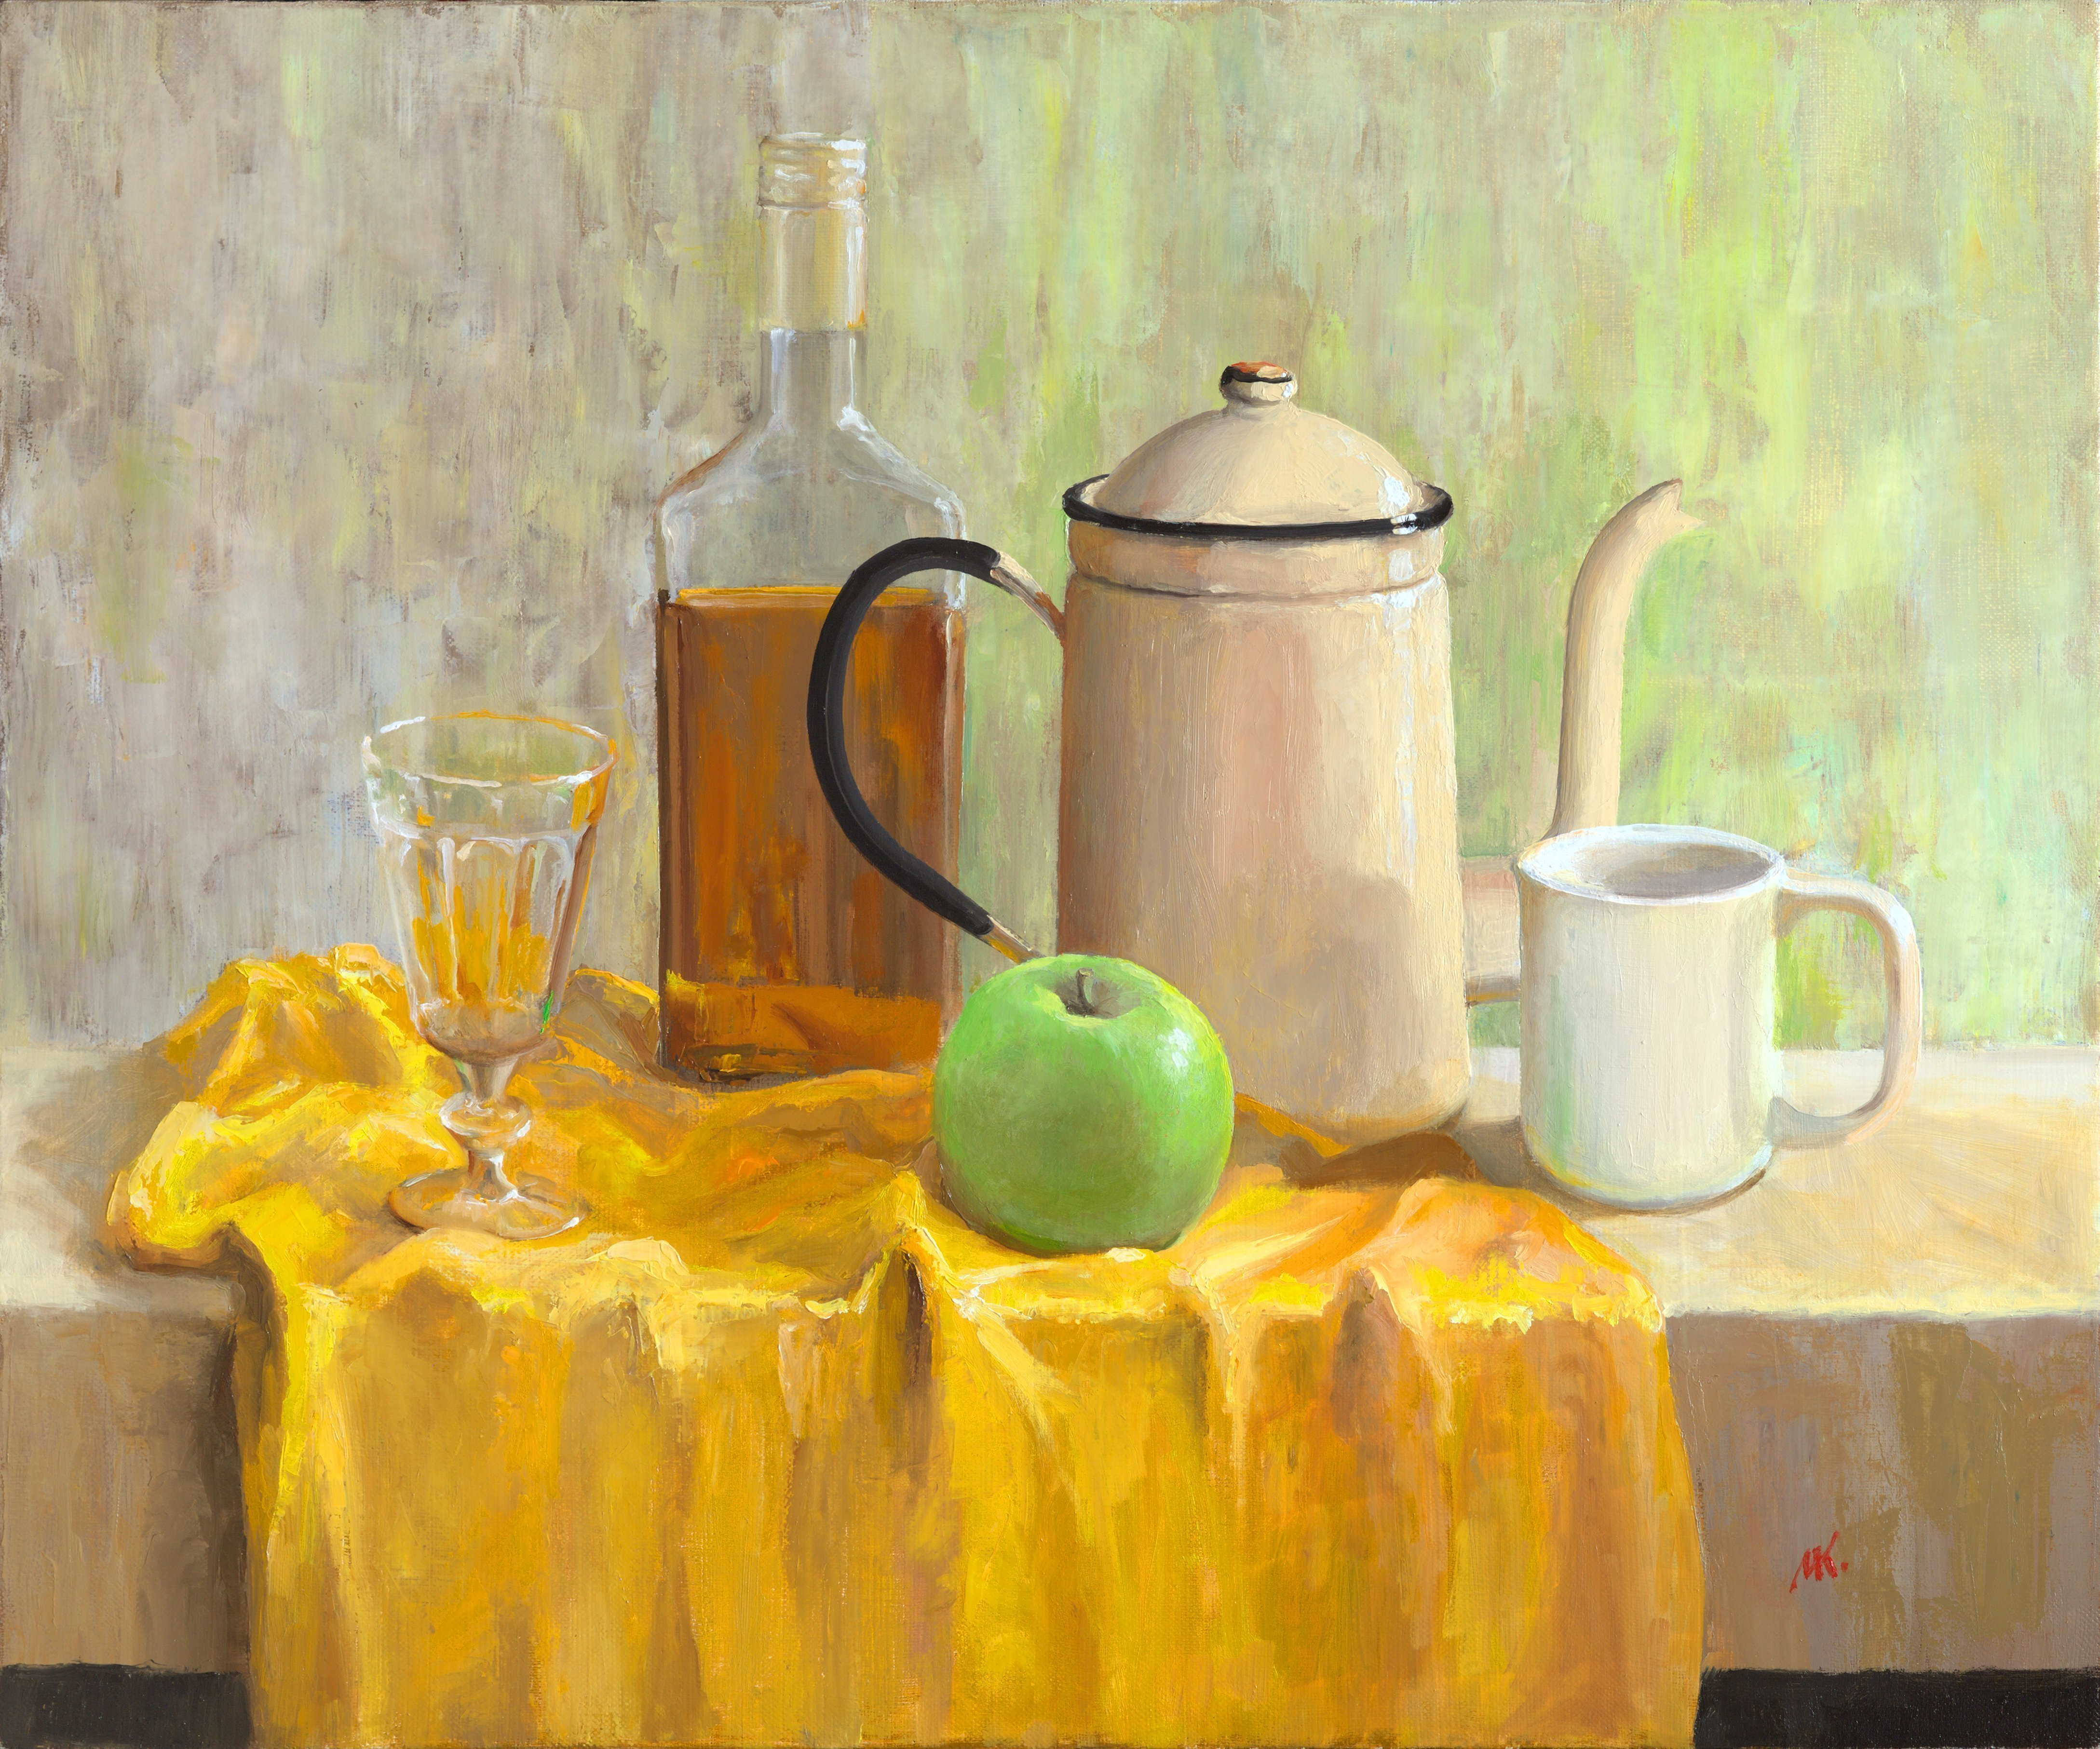 Mikhail Velavok; green apple, 2017, Original Painting Oil, 23.6 x 19.7 inches. Artwork description: 241 Original oil on canvas stretched on a wooden underframe. The artwork is being sold unframed. The frame in the additional photo is an example only.still life, apple, green apple, mug, cup, glass, wineglass, bottle, bottle glass, alcohol, coffeepot, coffee pot, wrinkle, fold, yellow, fabric...